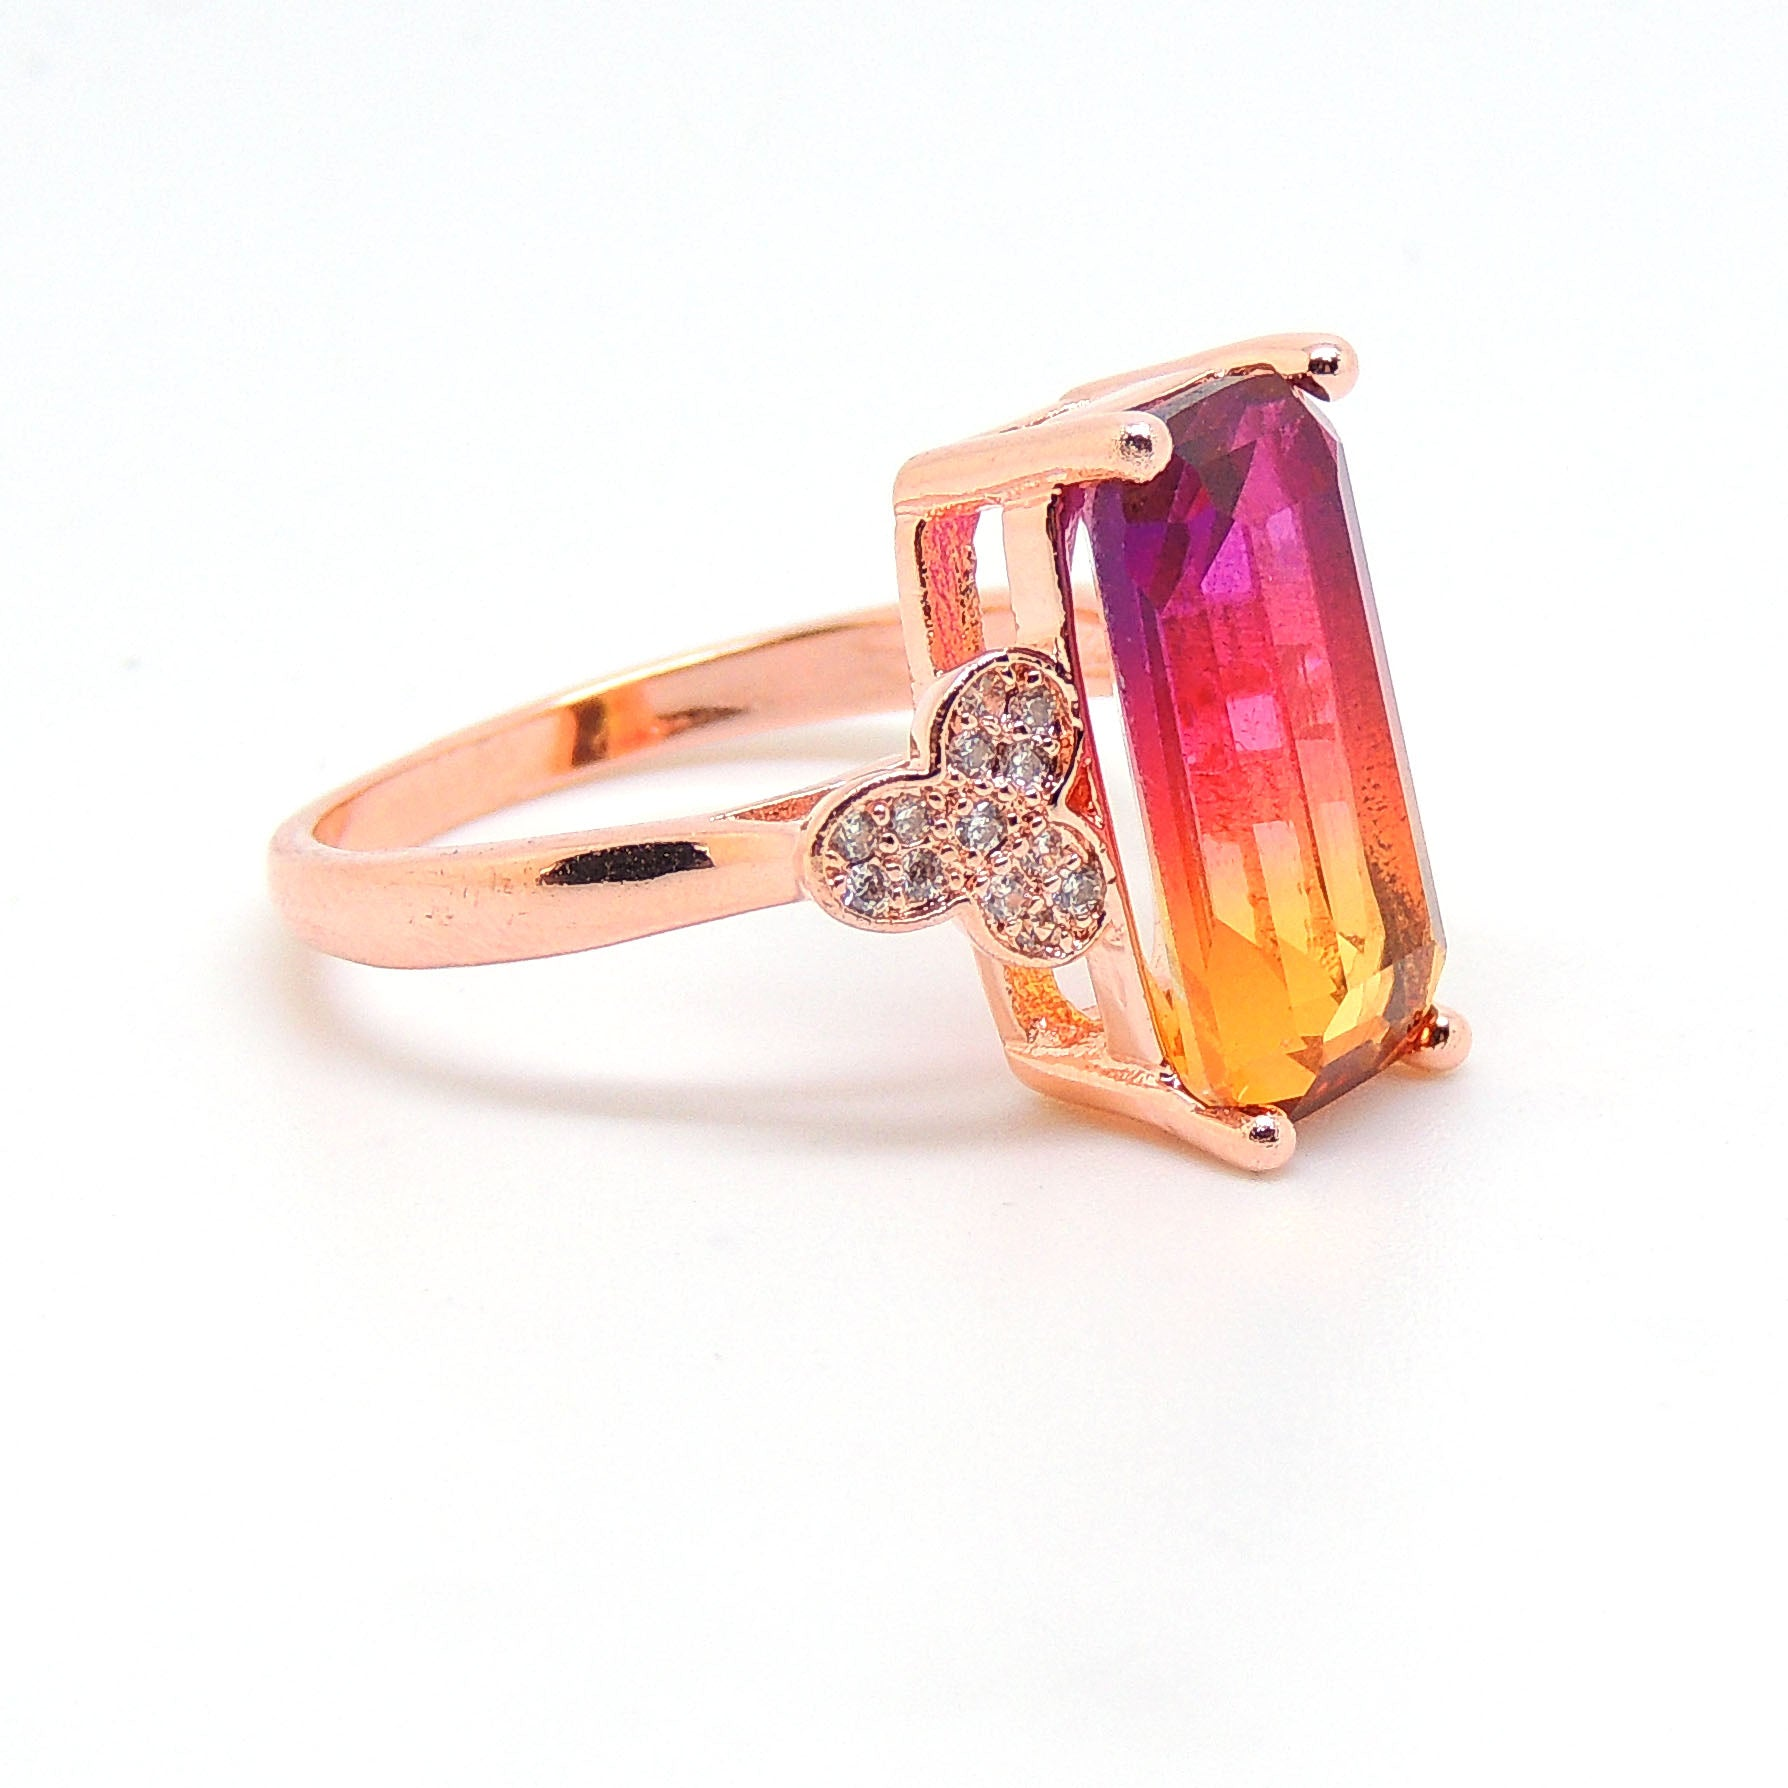 Iris Emerald Cut Rainbow Mystic Rose Gold Plated from the Ginger Lyne Collection